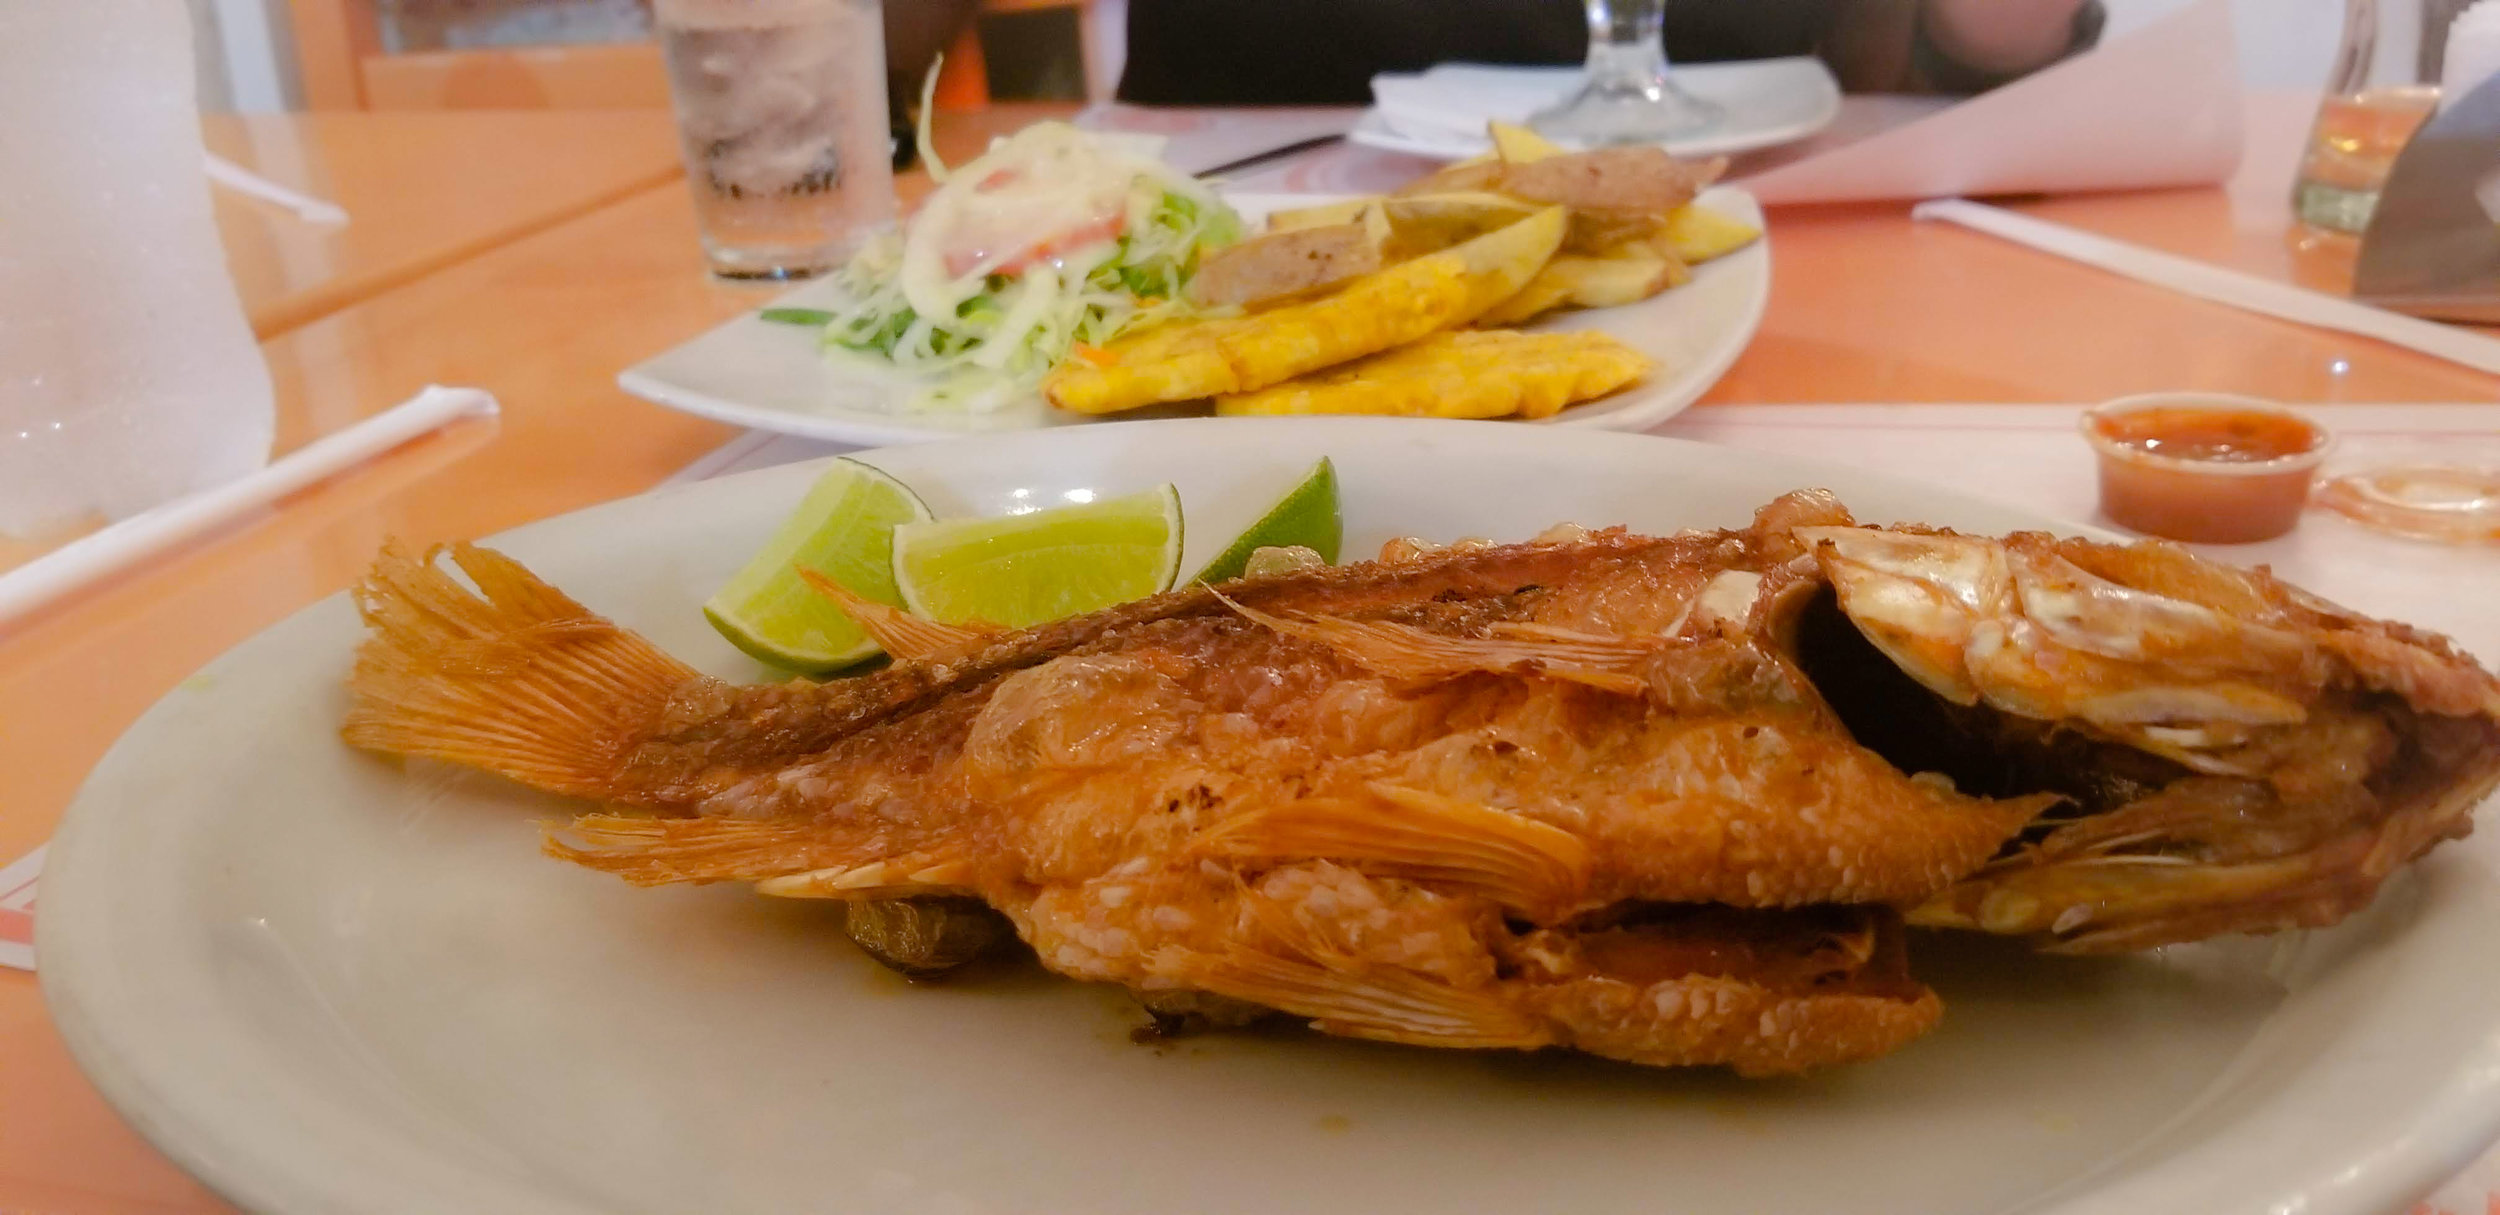 Restaurante Accion de Gracias - The fish was extremely fresh and perfectly crisp! Traditional pairing with it was plantains and salad.